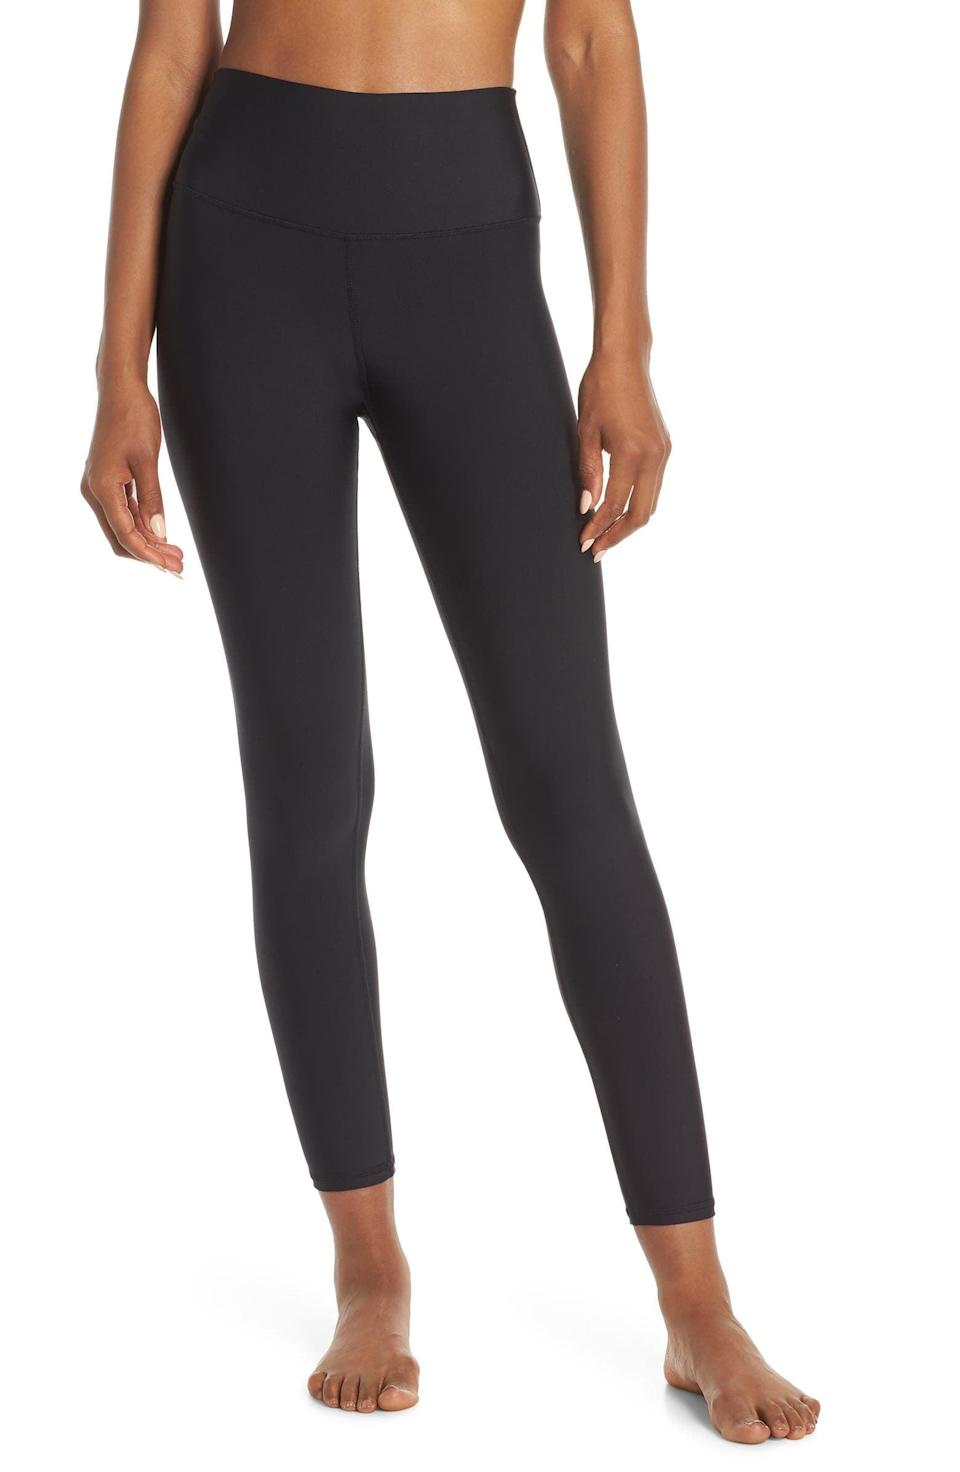 <p>These <span>Alo Airlift High Waist 7/8 Leggings</span> ($114) are some of our favorite leggings. They're flattering, supportive, and made to move with you.</p>